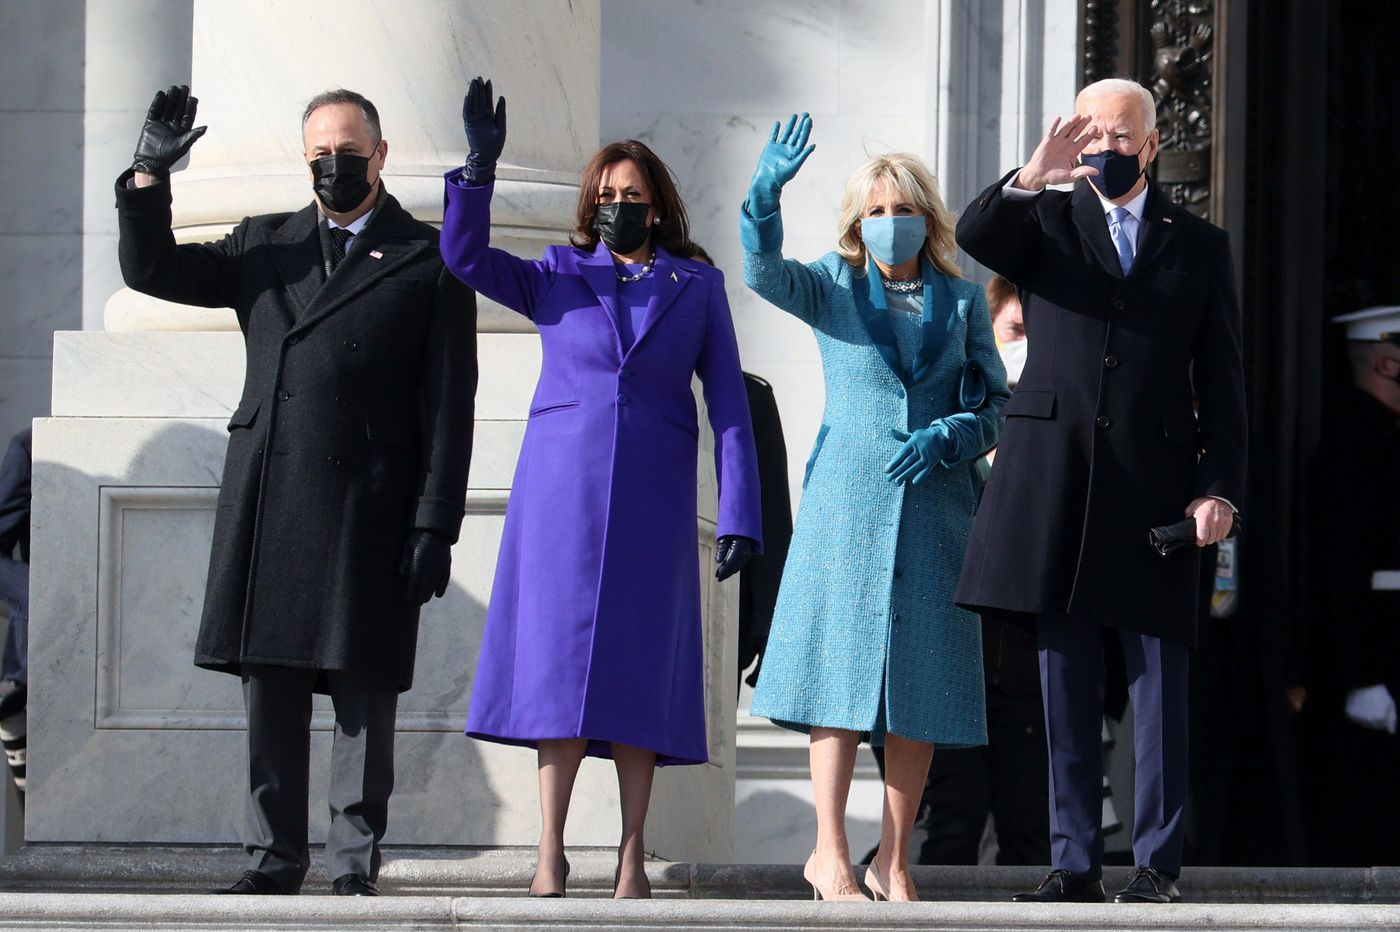 Joe Biden and Kamala Harris wave to the crowd after being sworn in on January 20th.